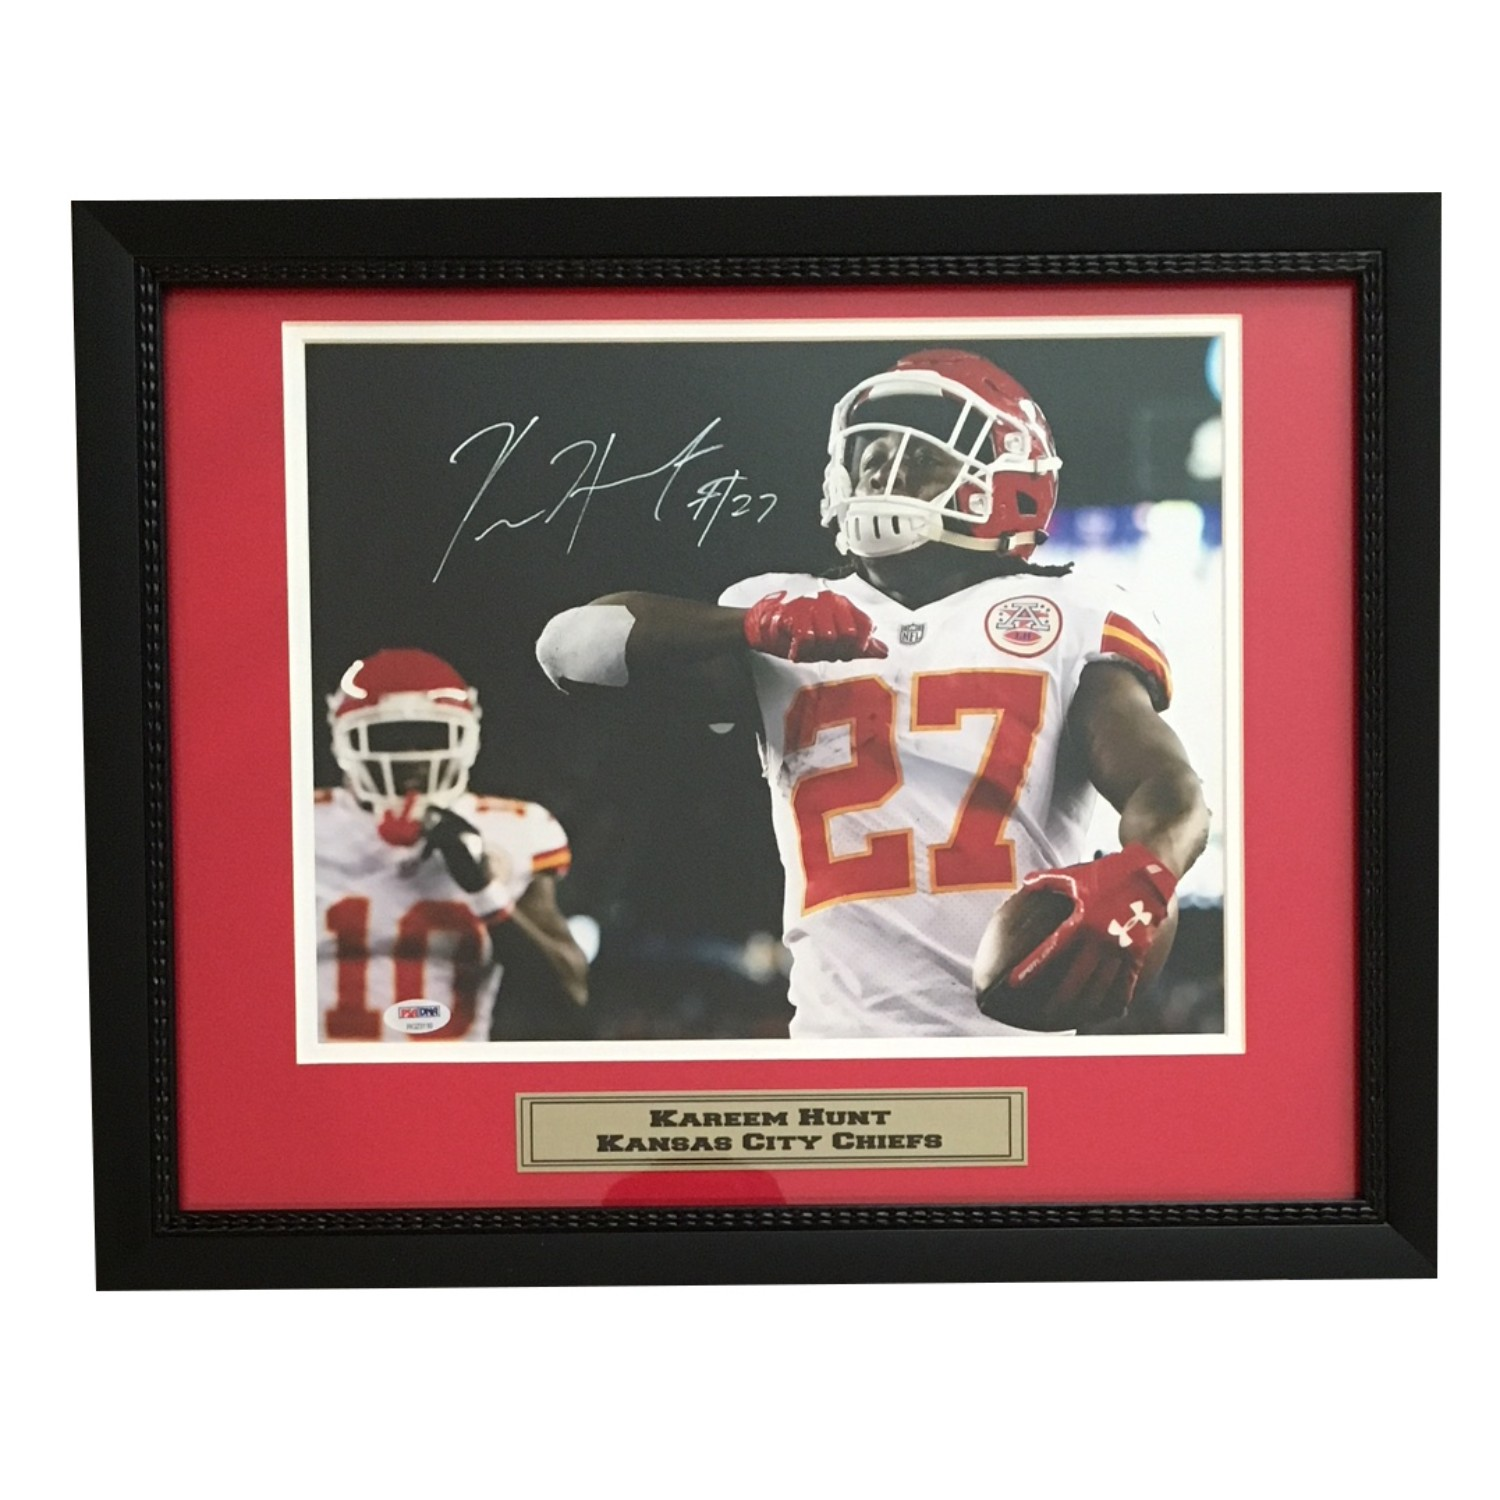 Kareem Hunt Autographed Kansas City Chiefs Signed 11x14 Football Framed Photo PSA DNA COA